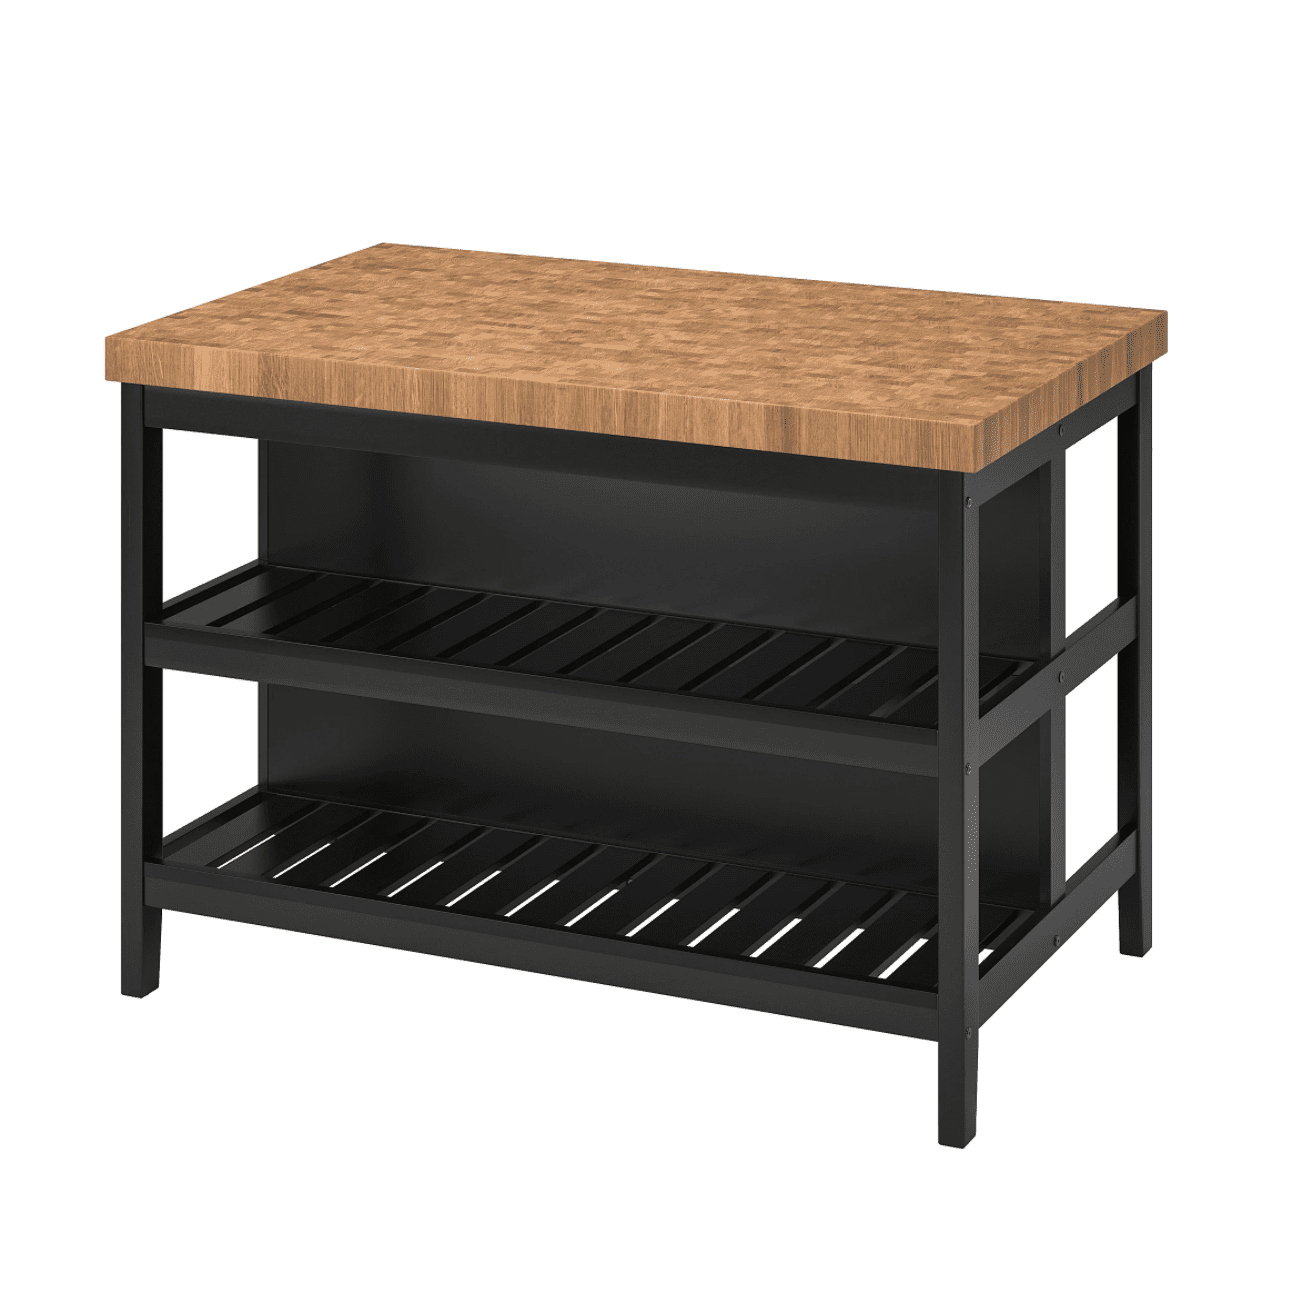 A black kitchen island you can buy at IKEA